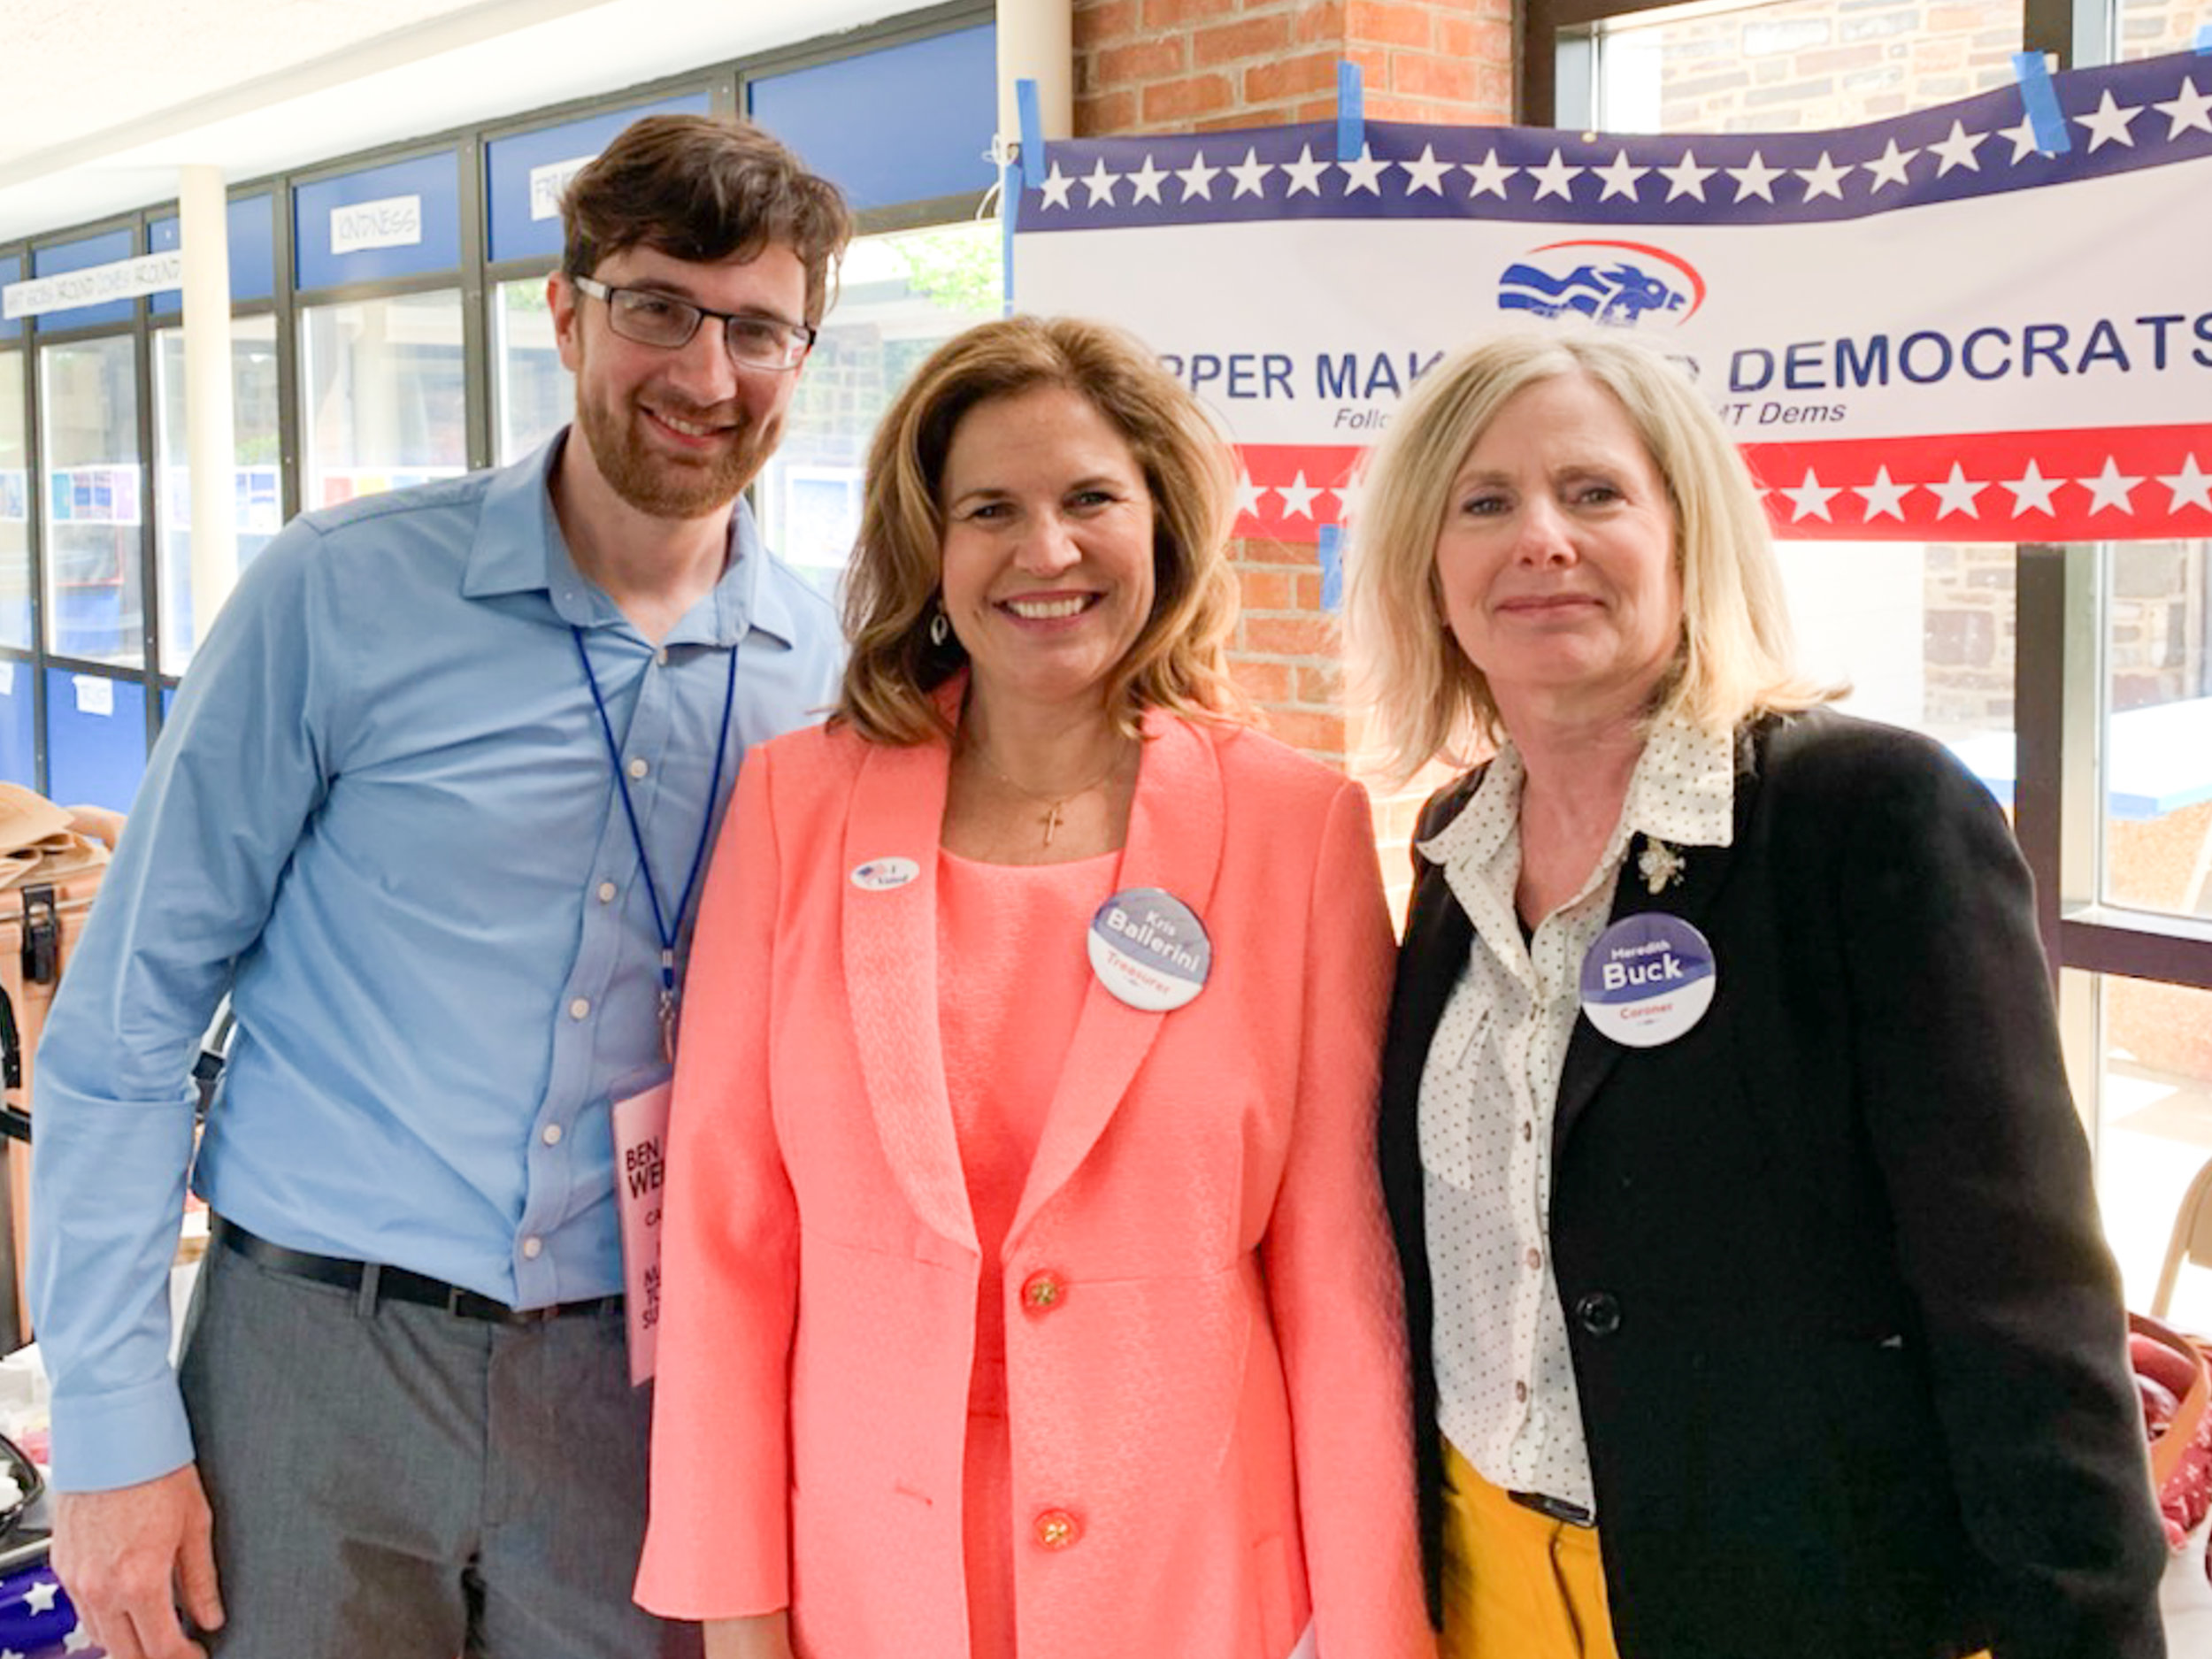 Ben with Bucks County Treasurer candidate Kris Ballerini and Bucks County Coroner candidate Meredith Buck